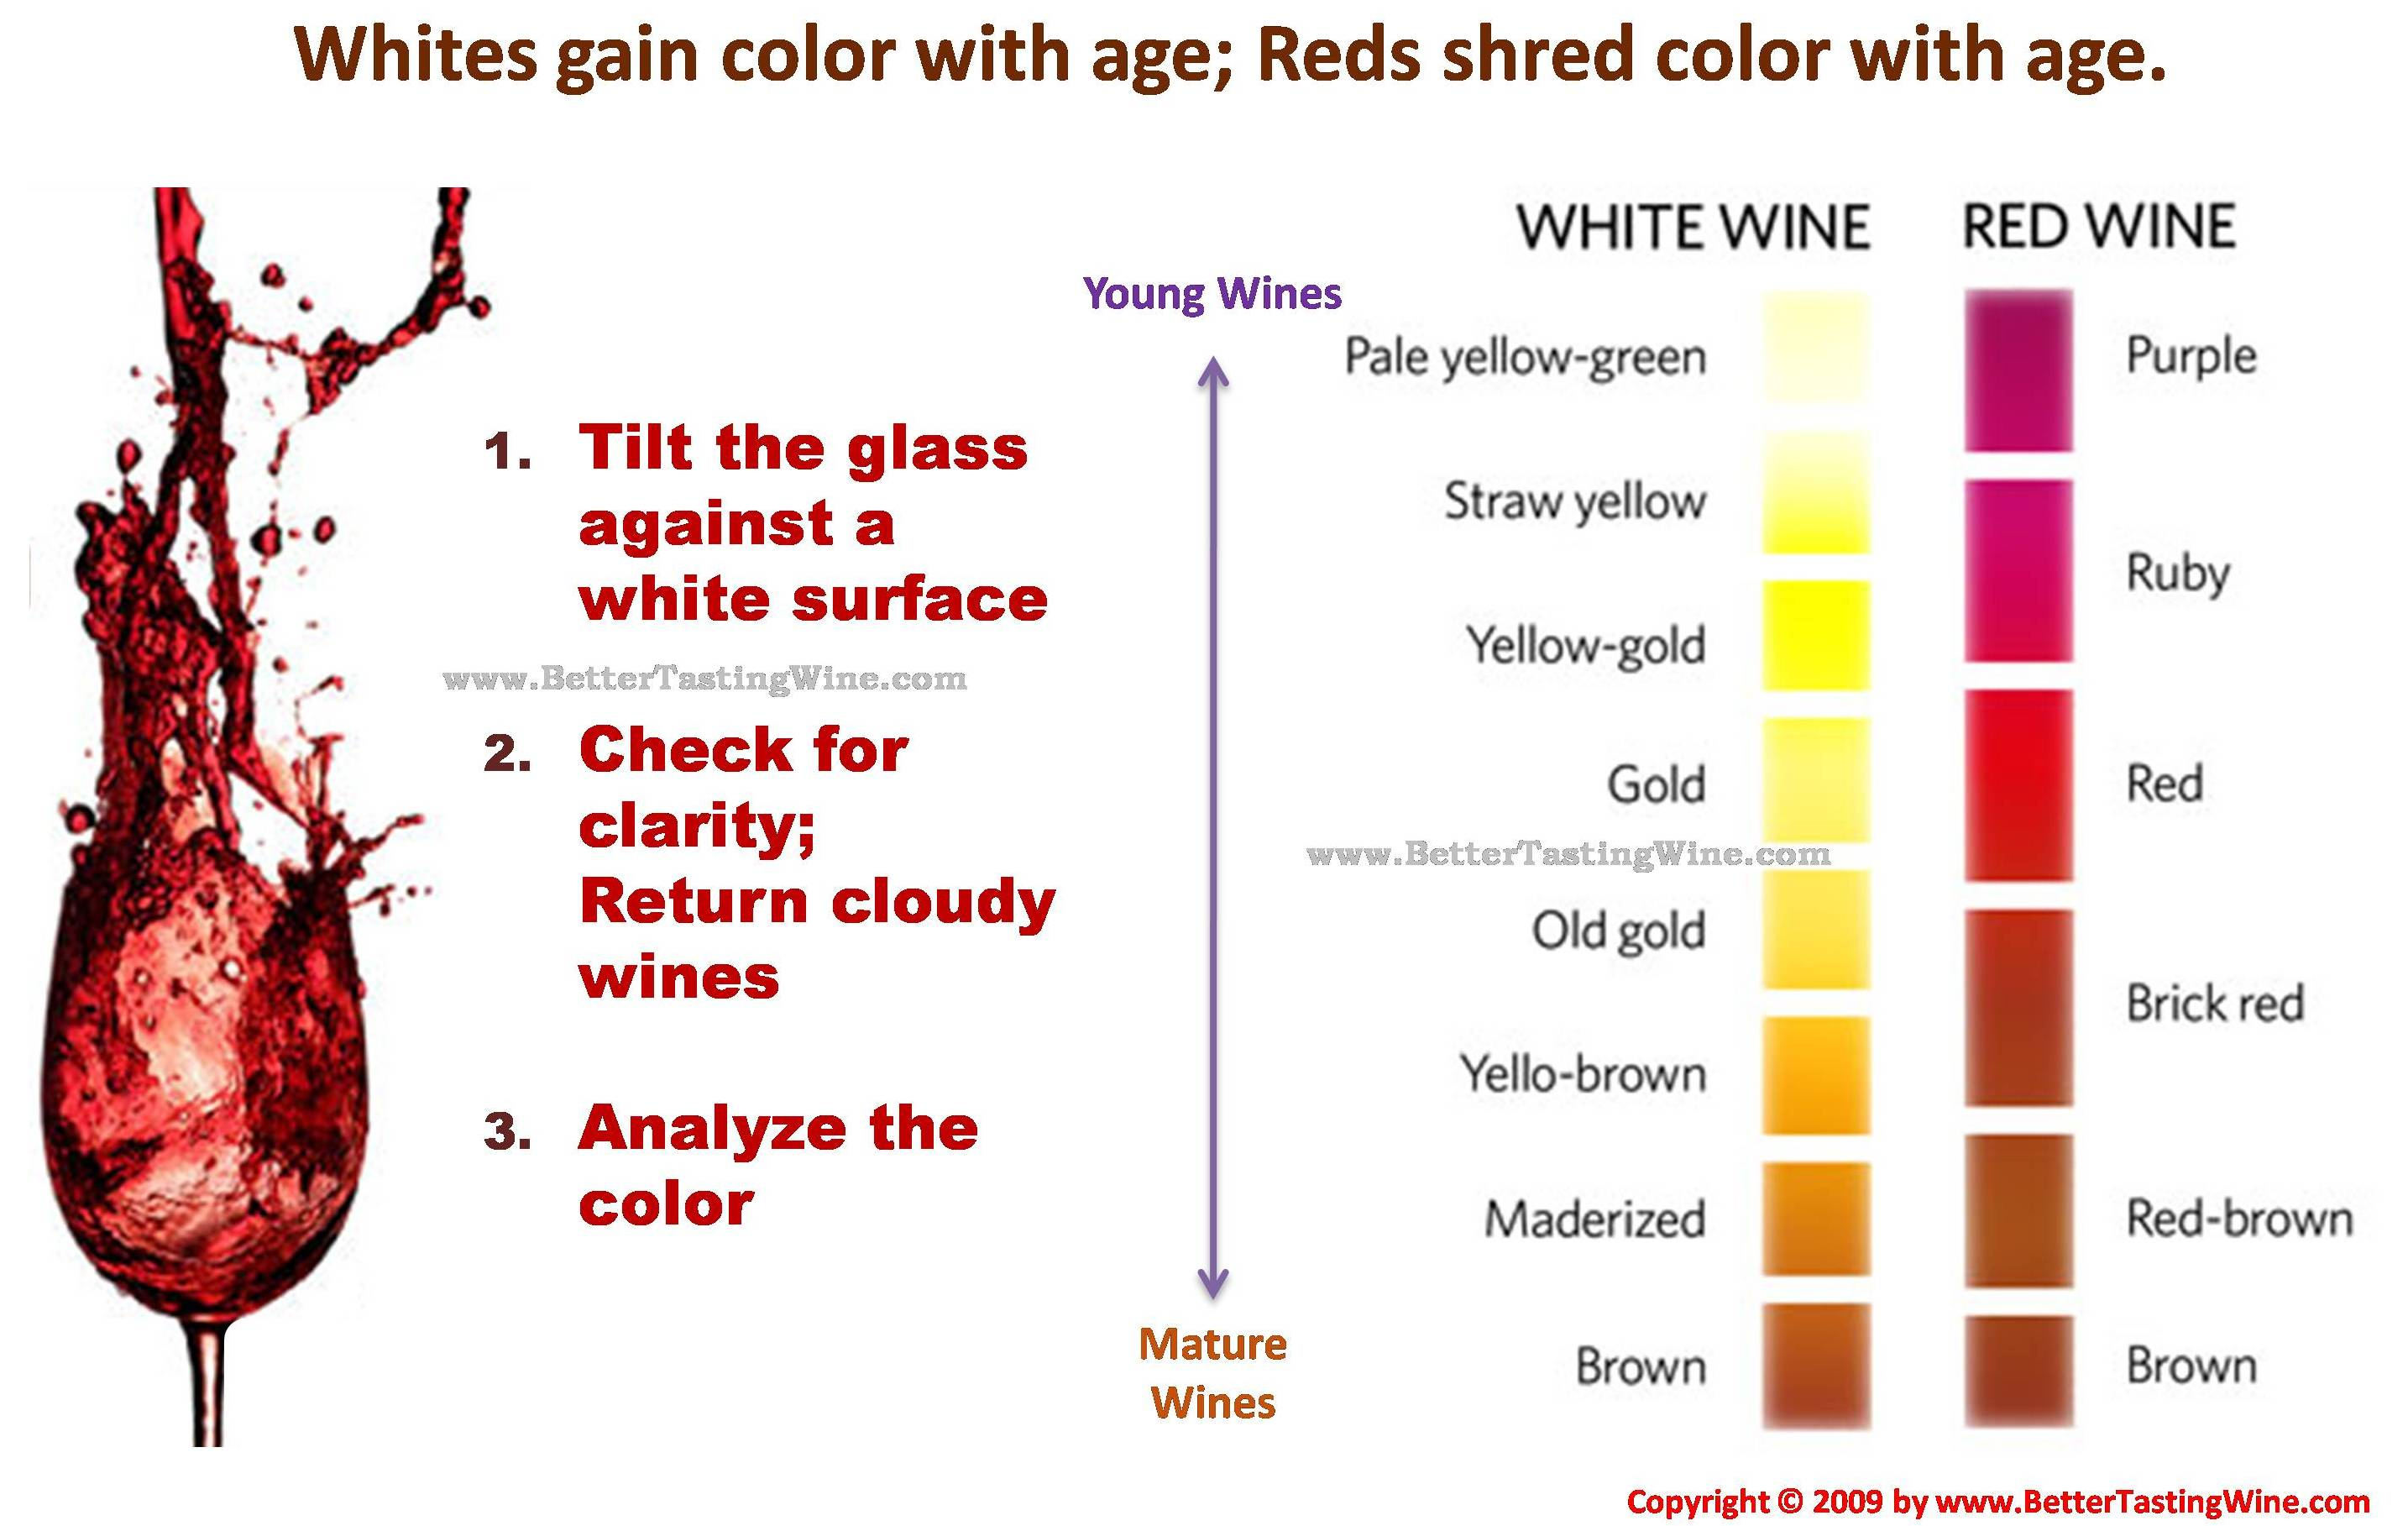 wine color with age